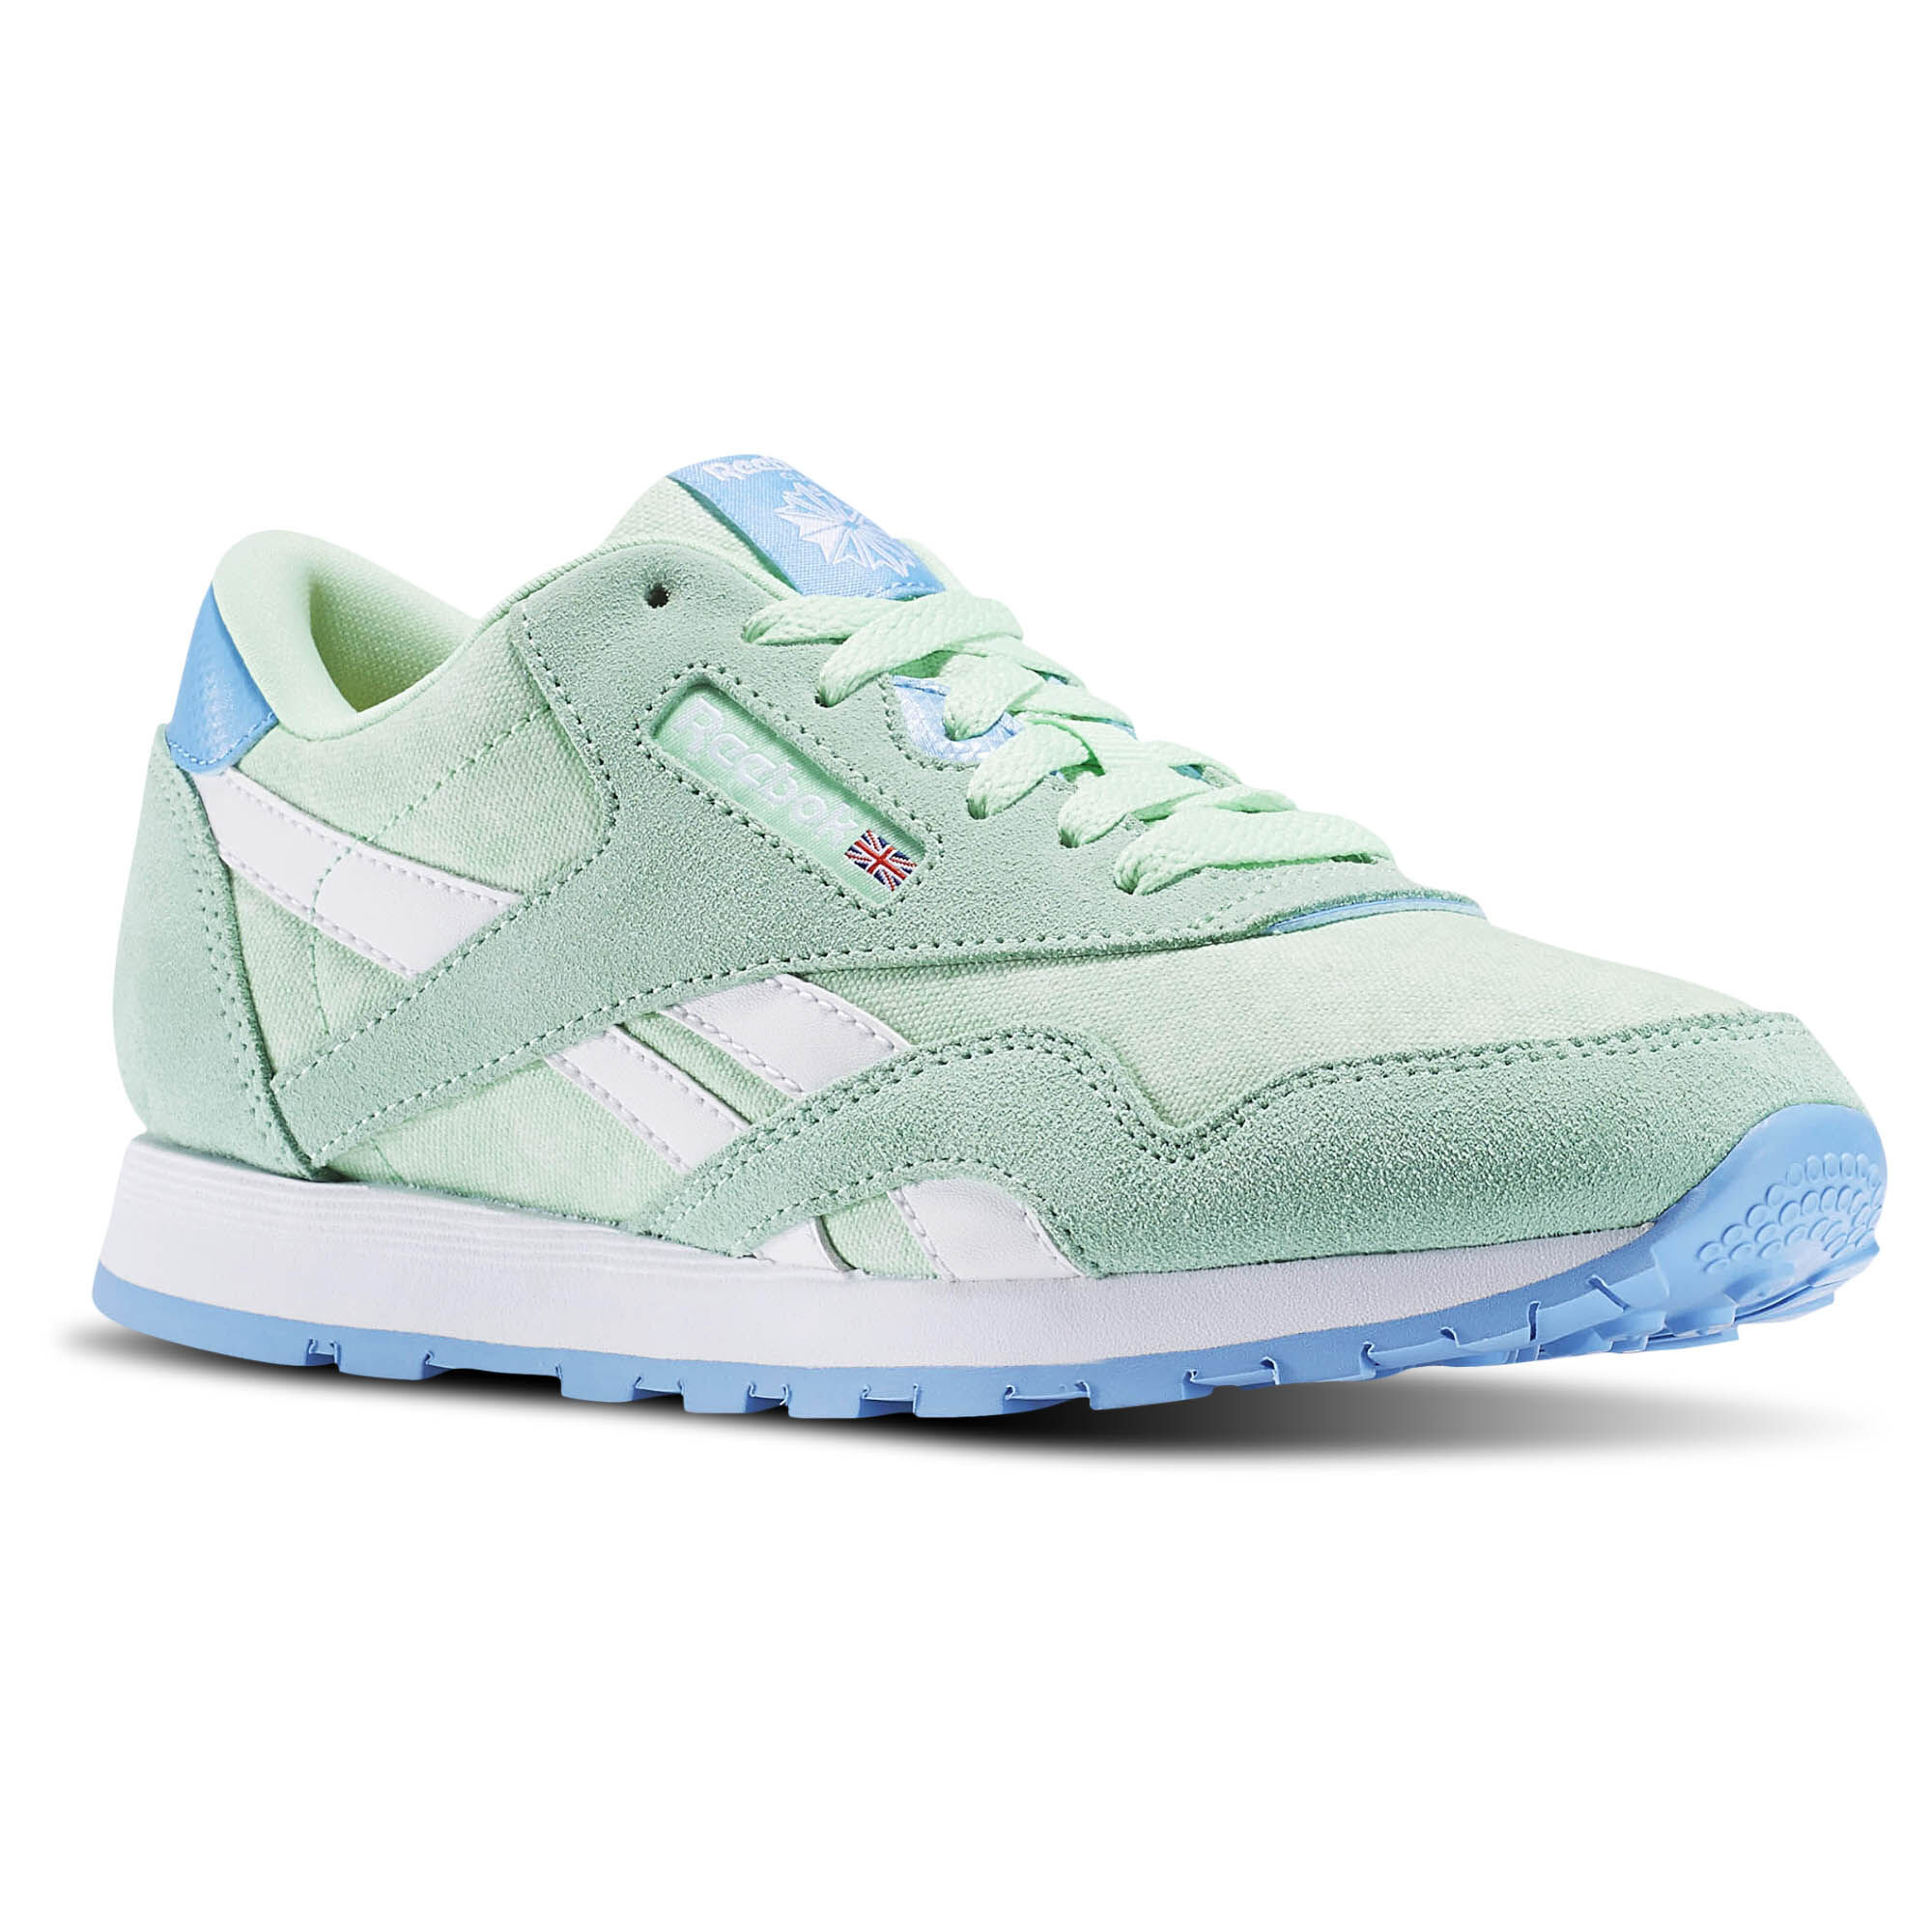 f9f4284633c reebok mint green shoes cheap   OFF45% The Largest Catalog Discounts